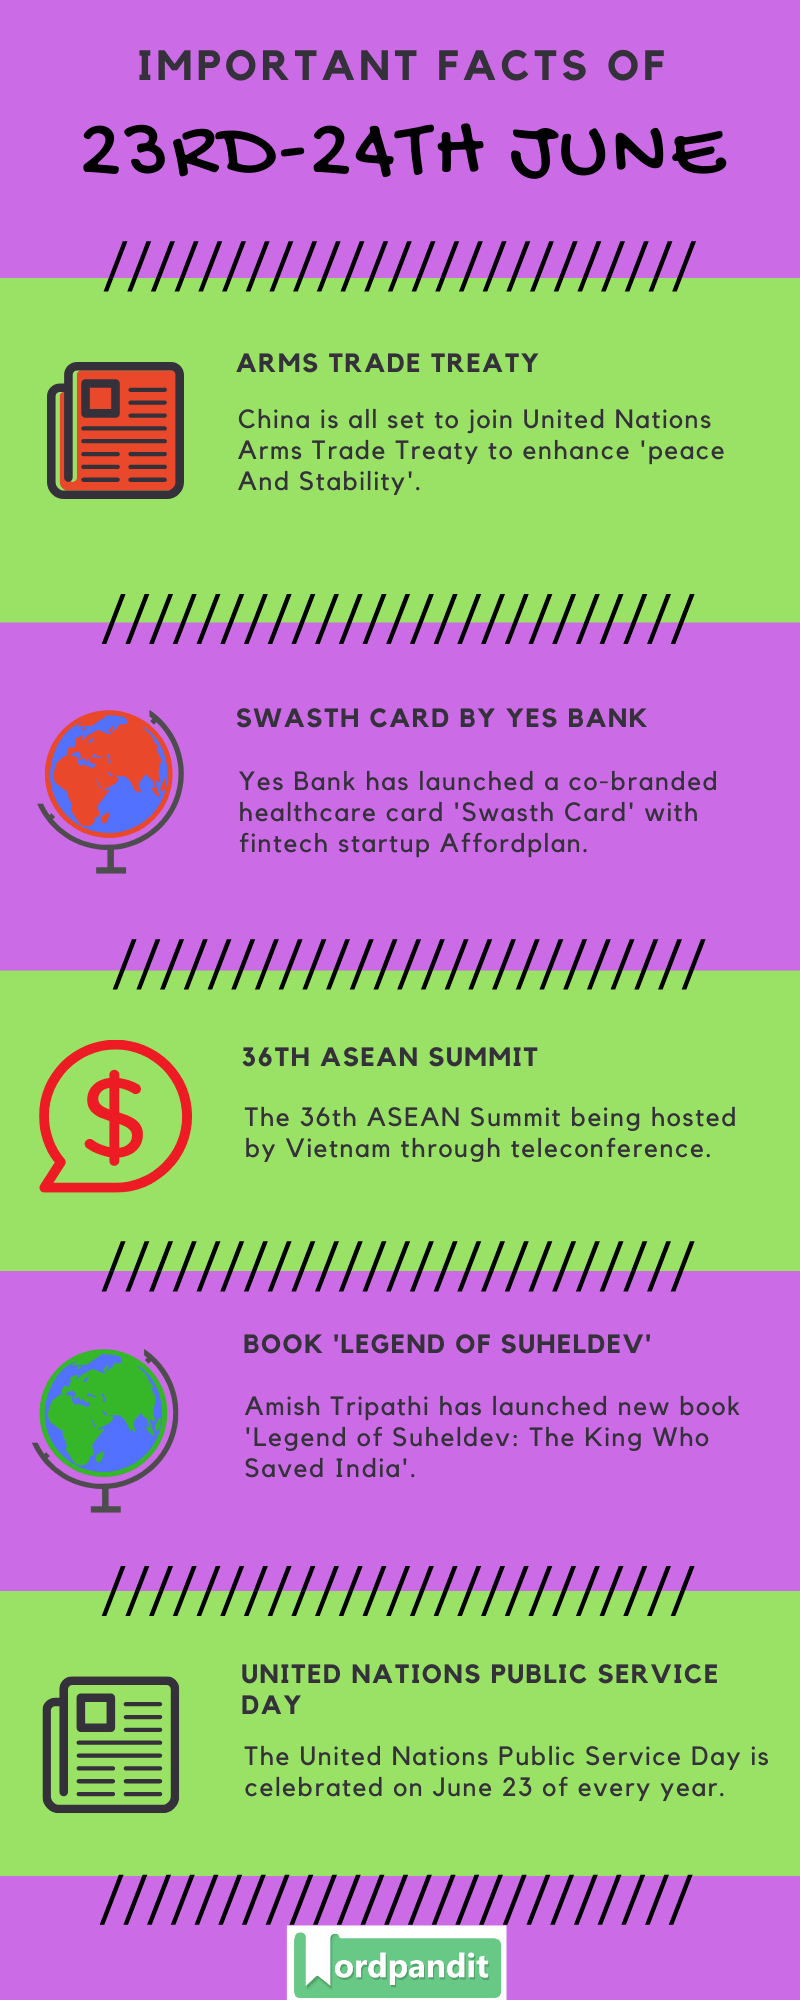 Daily Current Affairs 23rd-24th June 2020 Current Affairs Quiz 23rd-24th June 2020 Current Affairs Infographic